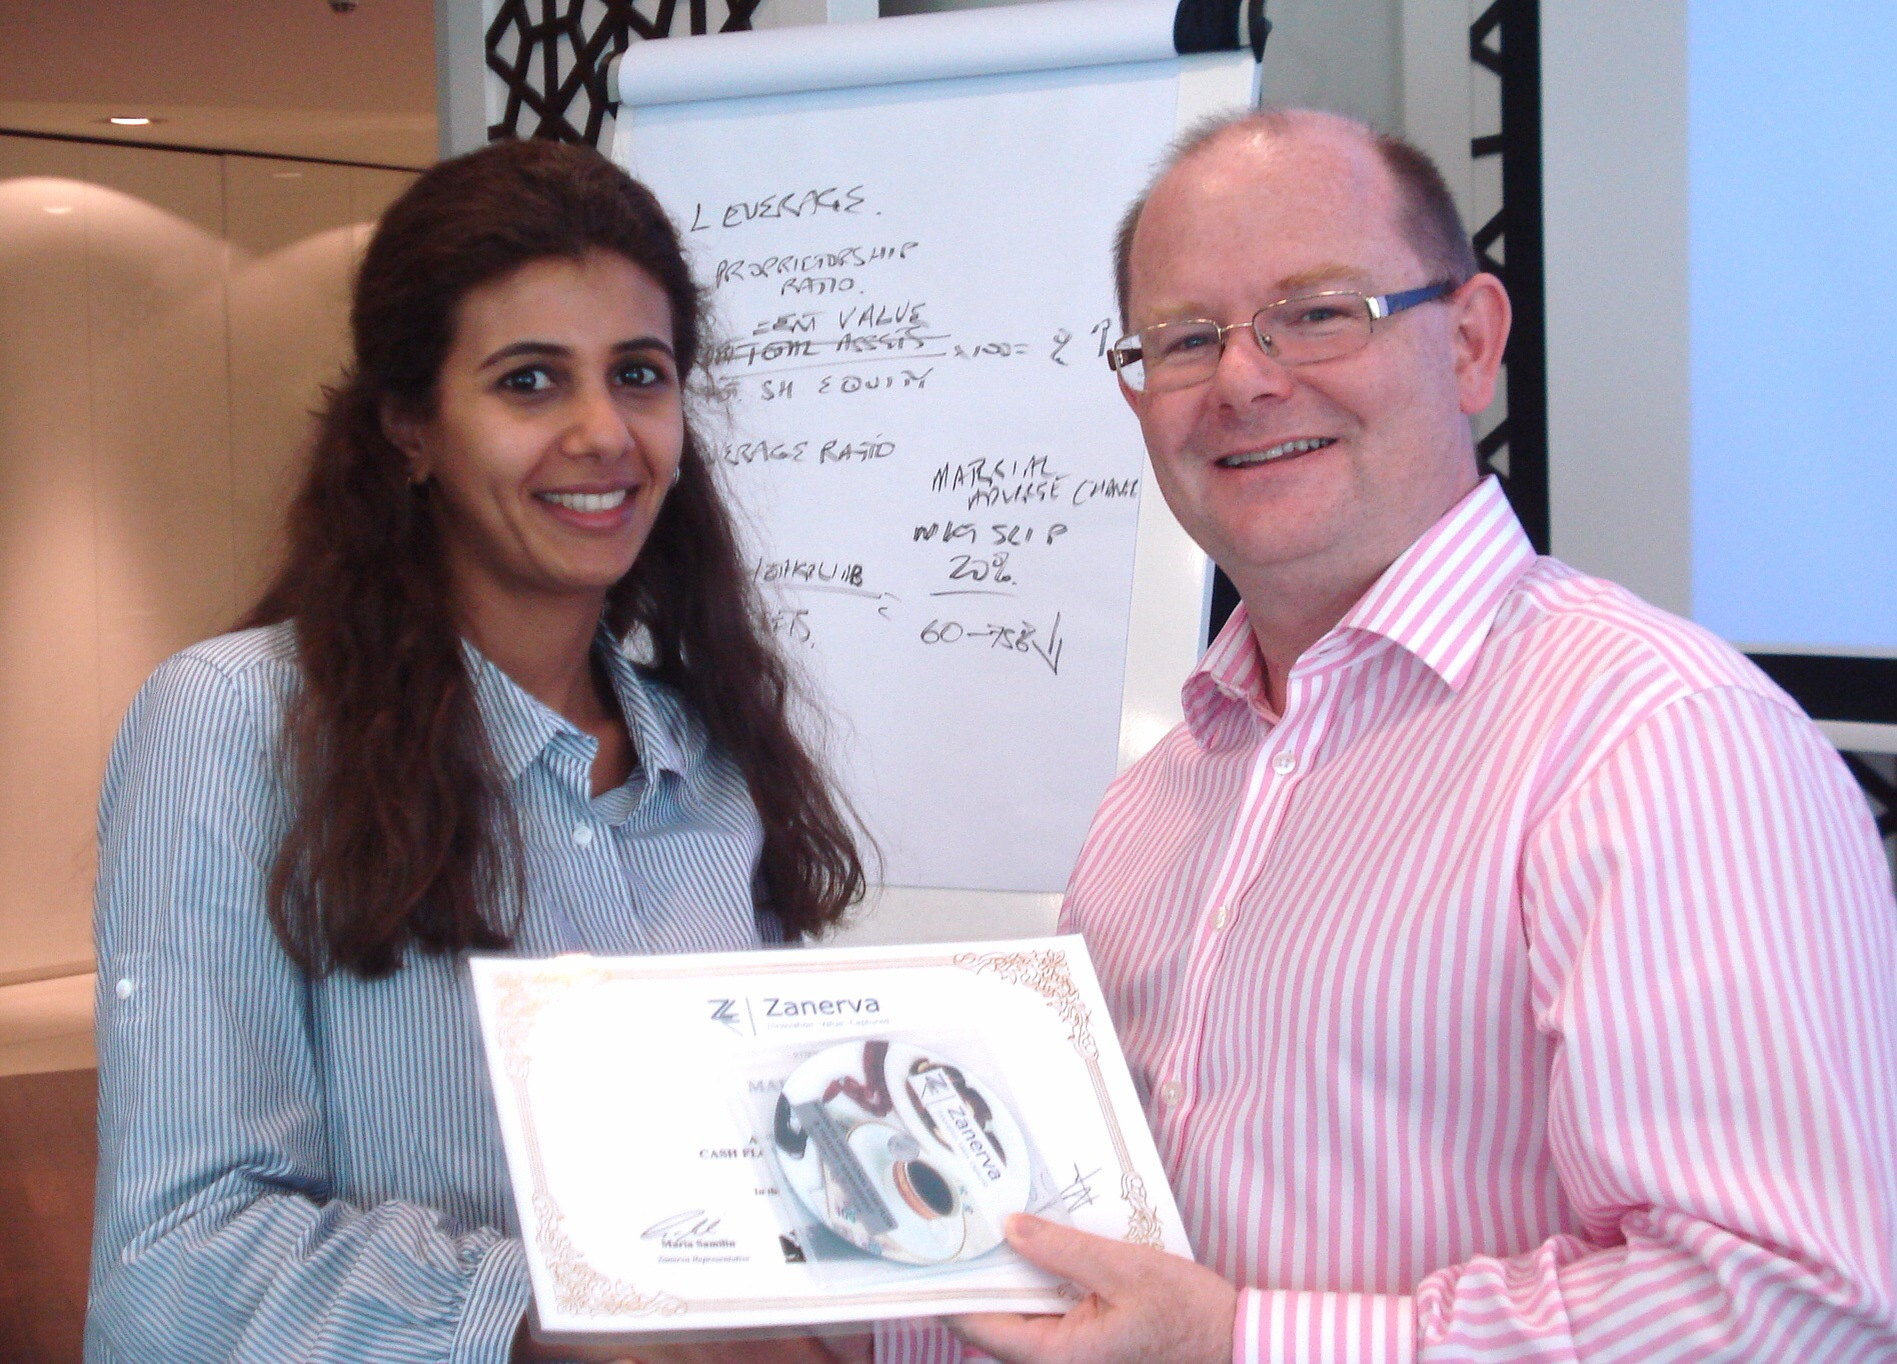 Mai Al Mutair Group Investment Manager atZain Mobil Telecommunications Kuwait receiving her certificate of participation for attending the Advanced Operational Cash Flow & Liquidity Risk Management workshop in Dubai